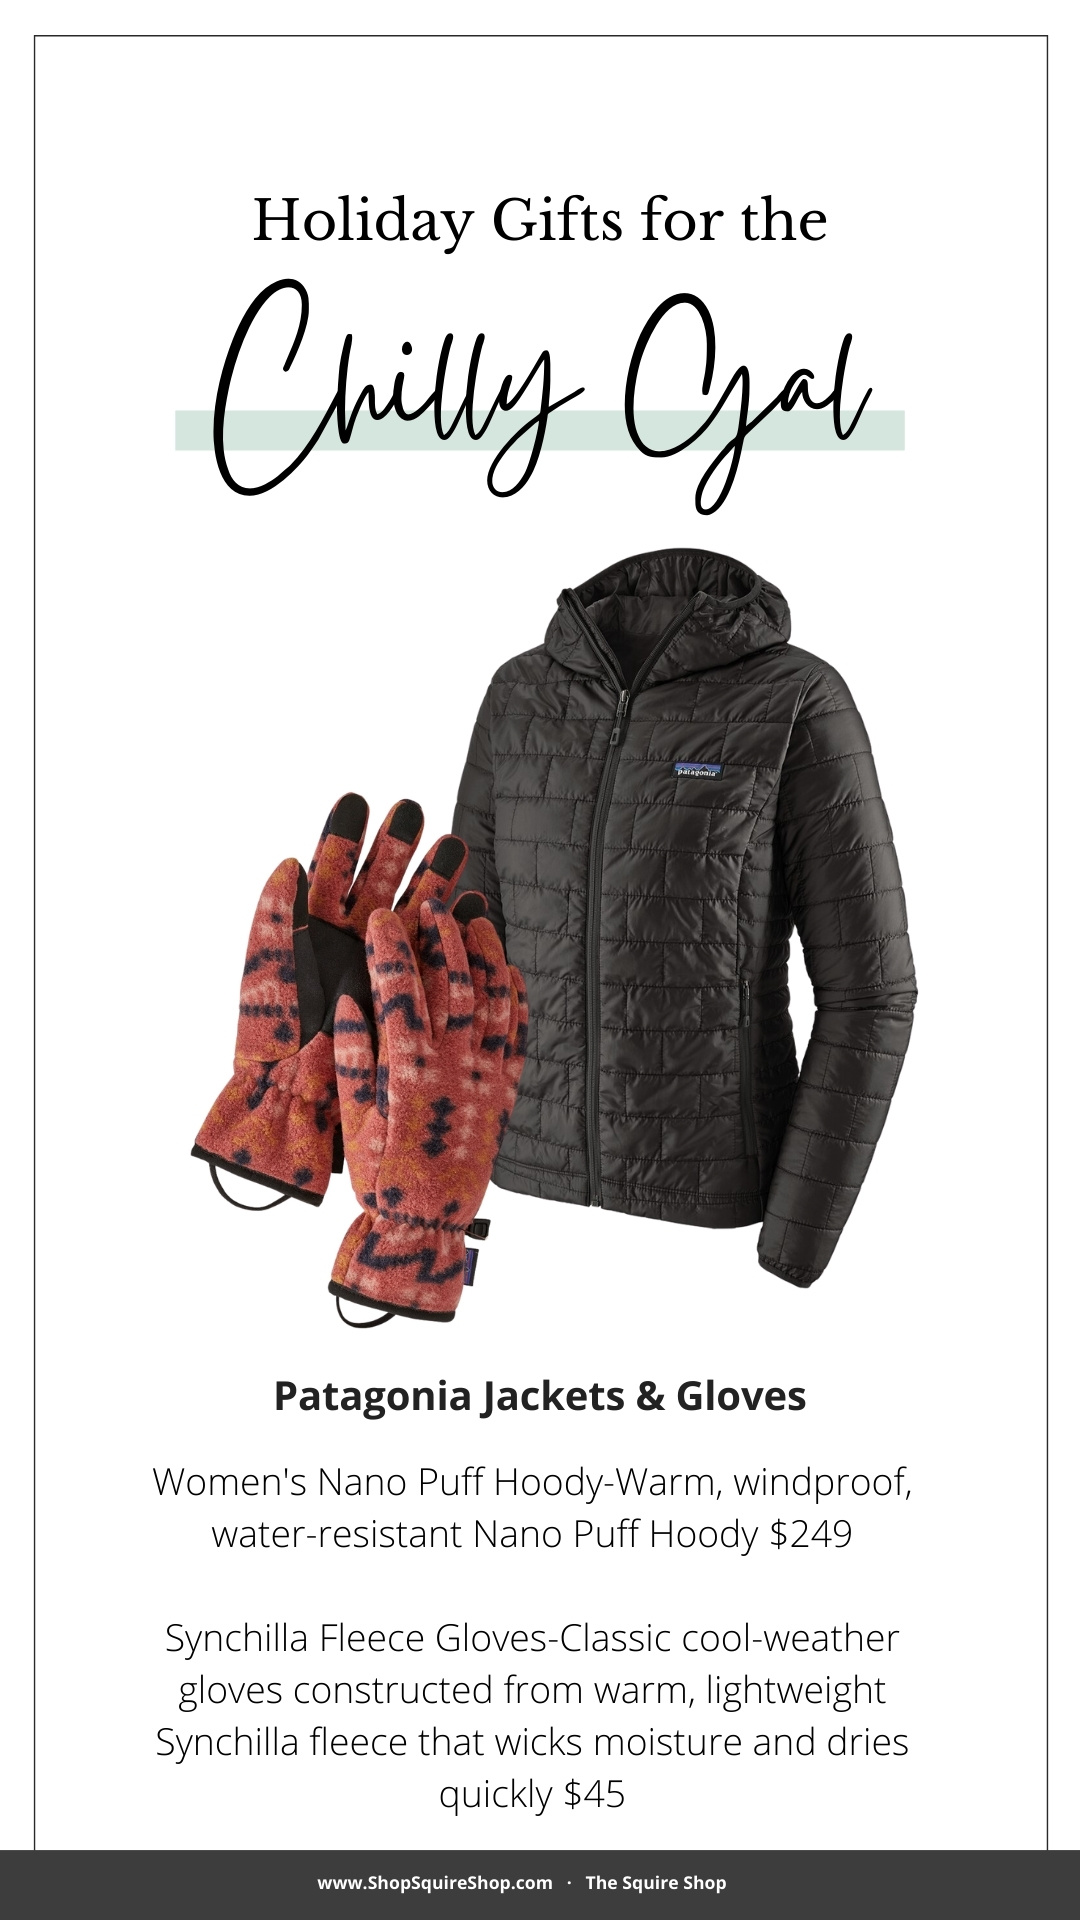 Gift Guide | Chilly Gal Patagonia